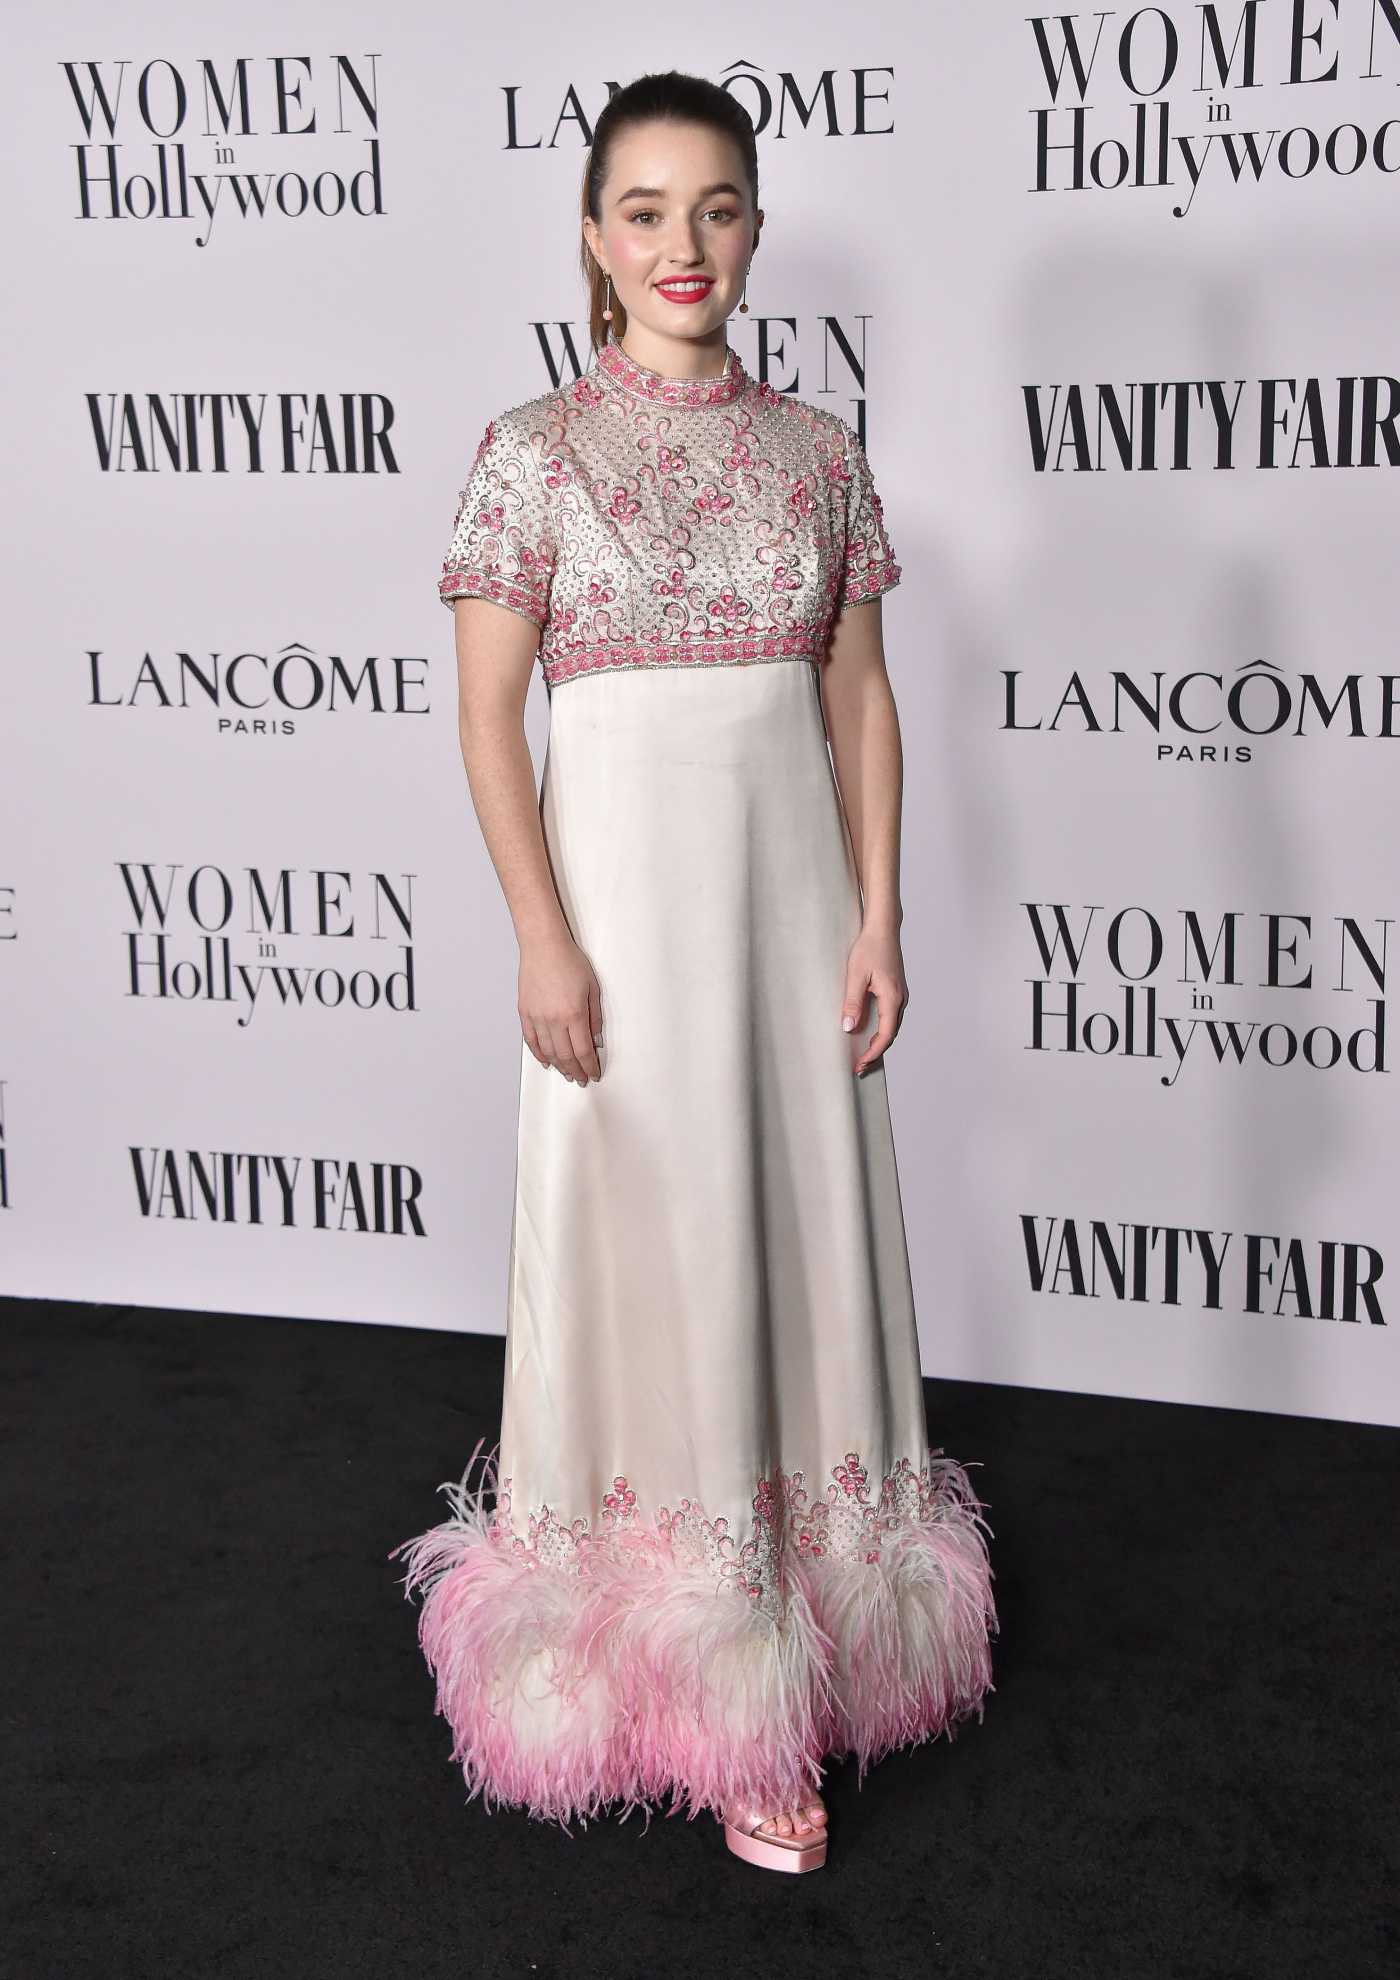 Kaitlyn Dever Attends the Vanity Fair and Lancome Women in Hollywood Celebration at SoHo House in West Hollywood 02/06/2020